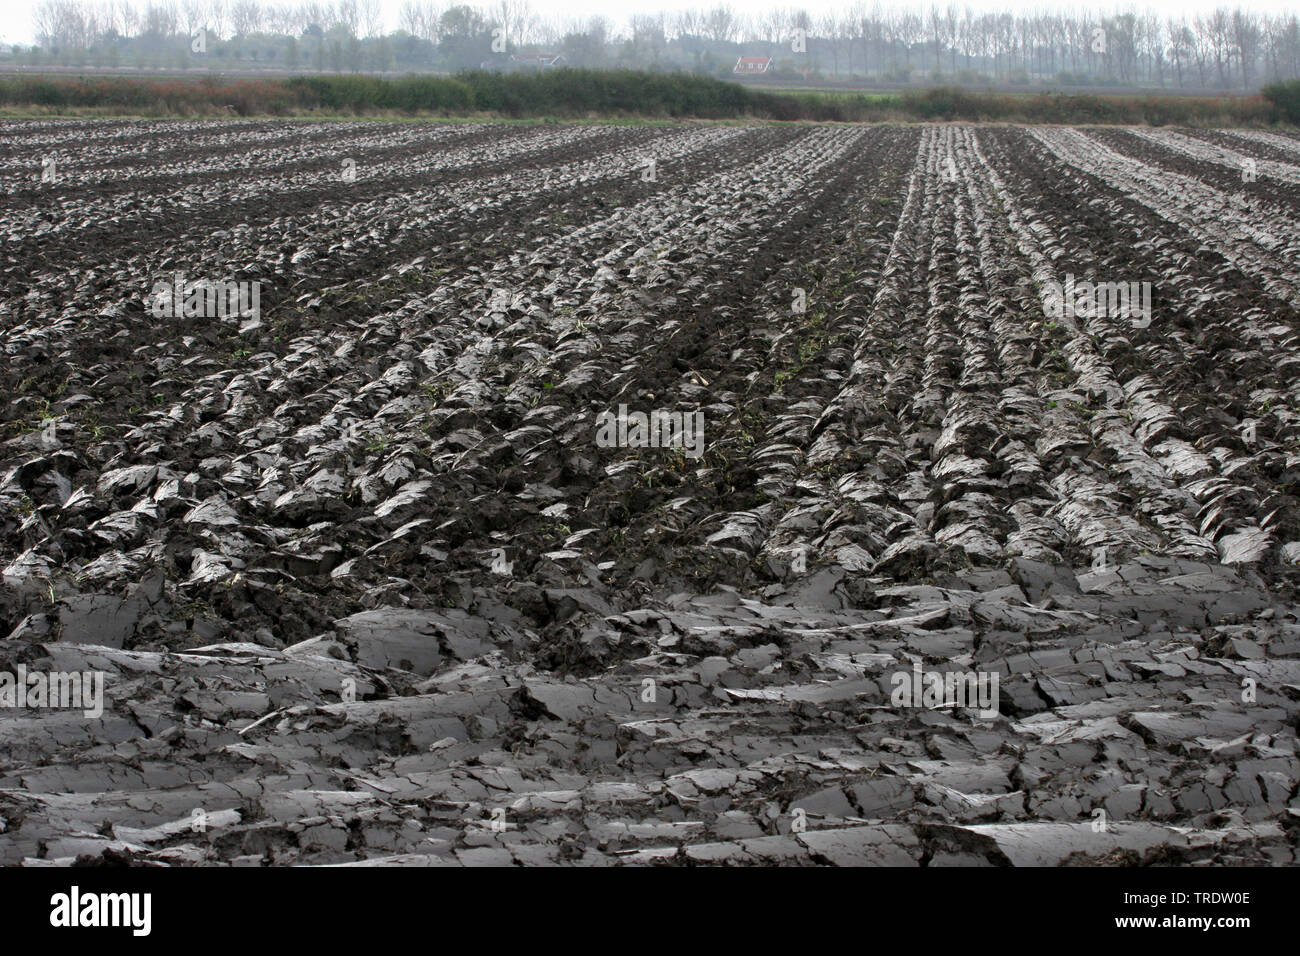 Klei-Boden; Tonboden, fruchtbarer Ackerboden nach dem Pfluegen, Niederlande | clay ground, fruitful field after ploughing, Netherlands | BLWS510545.jp - Stock Image